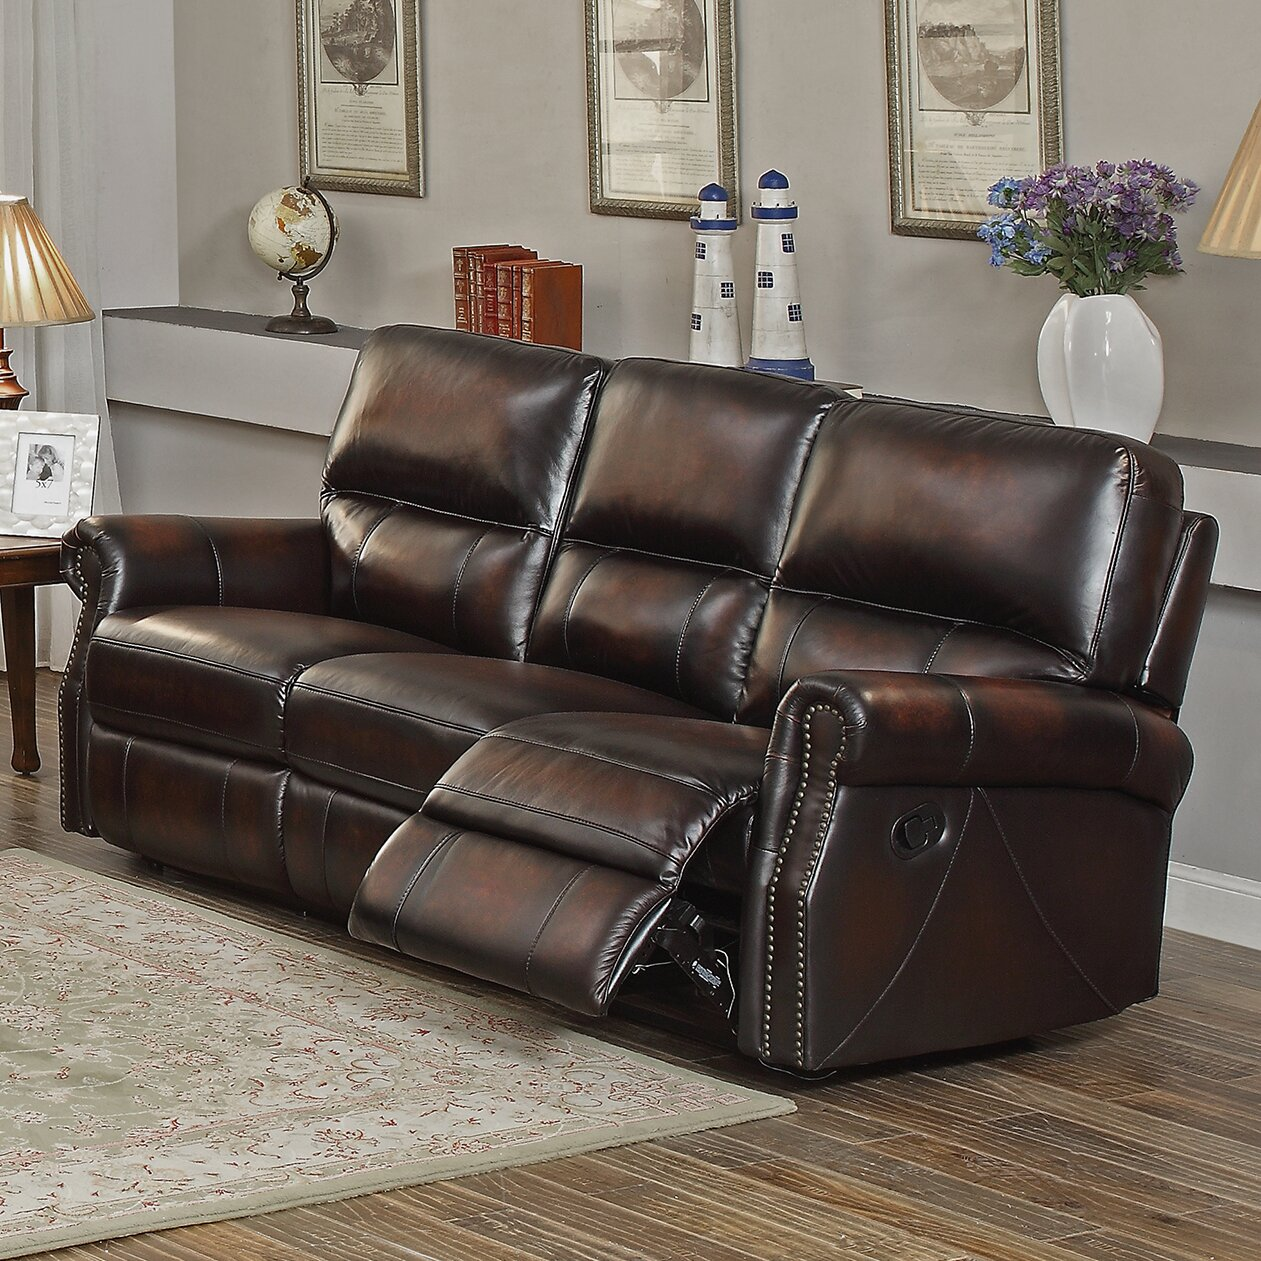 Amax nevada 2 piece leather living room set reviews for 2 piece living room set